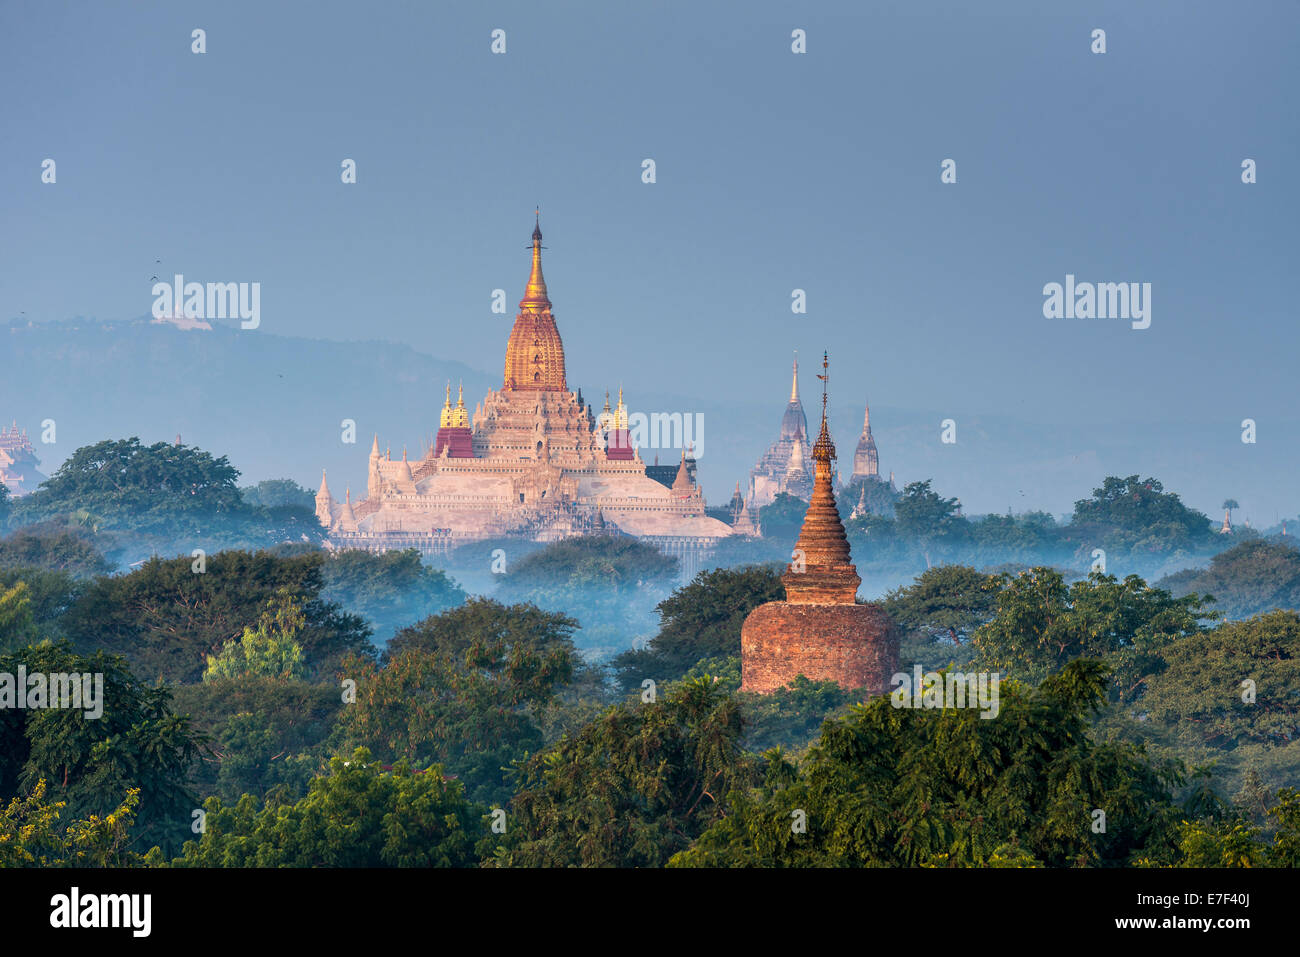 Ananda Temple in the morning fog, blue hour, gilded tower structure or Shikhara, stupas, pagodas, temple complex - Stock Image